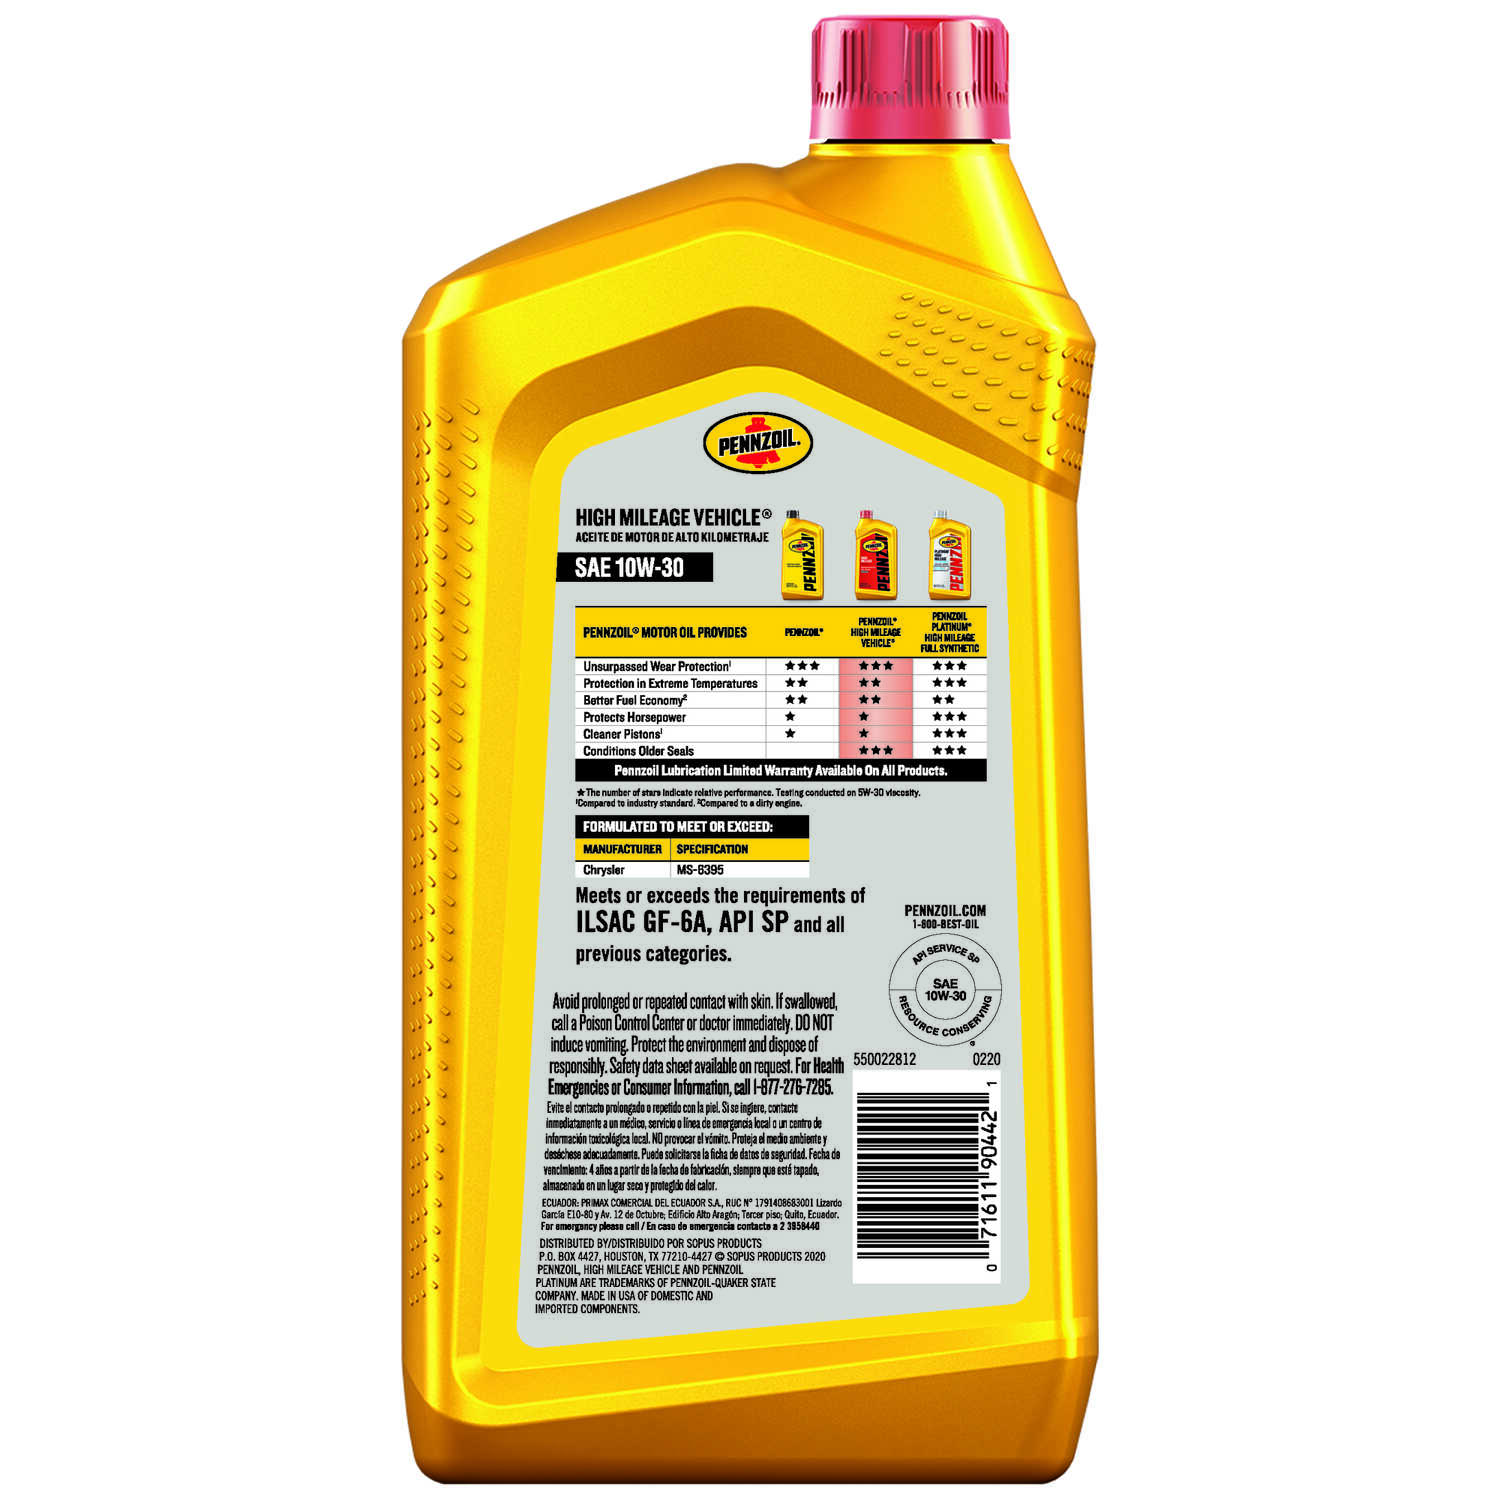 PENNZOIL  High Mileage Vehicle  10W-30  4 Cycle Engine  Motor Oil  1 qt.